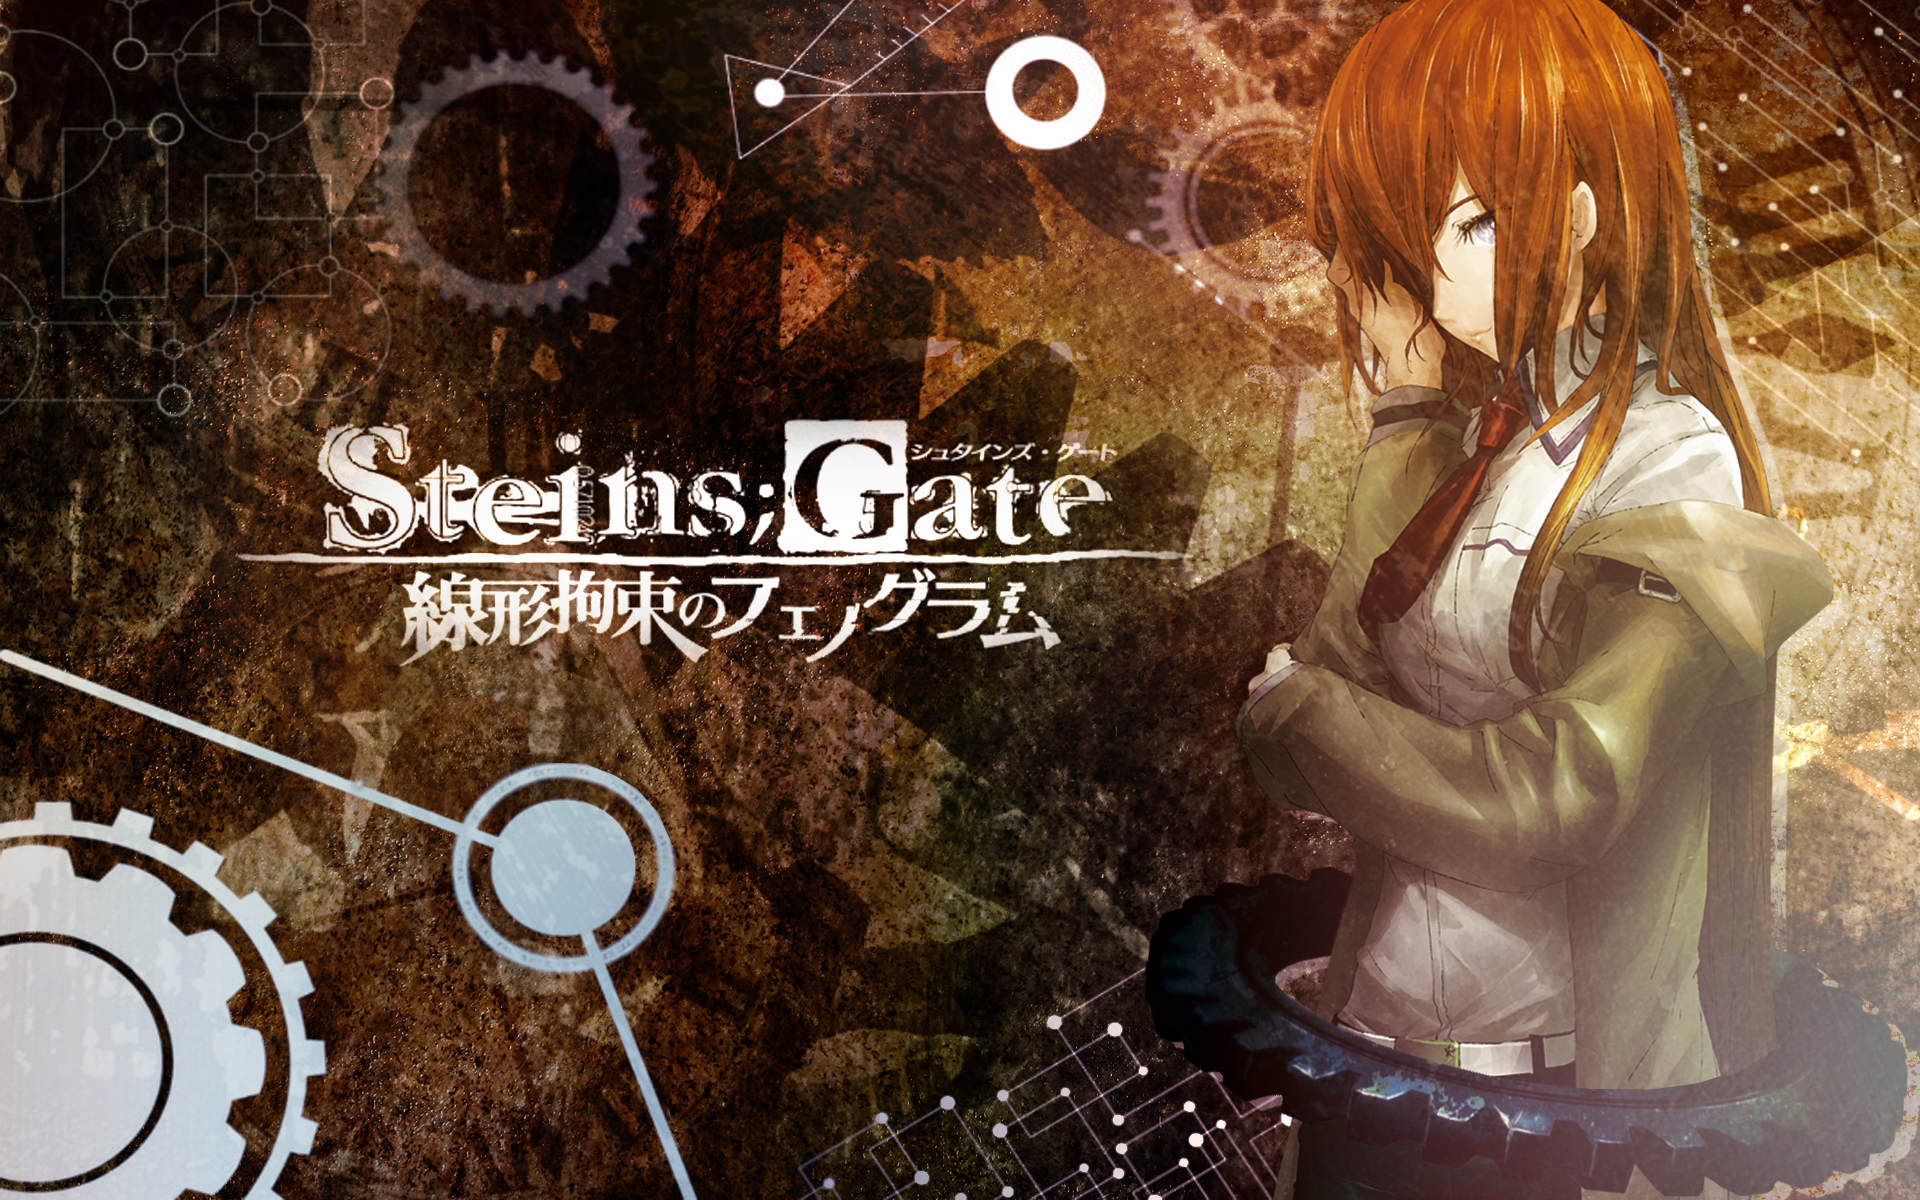 Kurisu Makise Steins Gate Wallpaper By Novadarkmadness On Deviantart